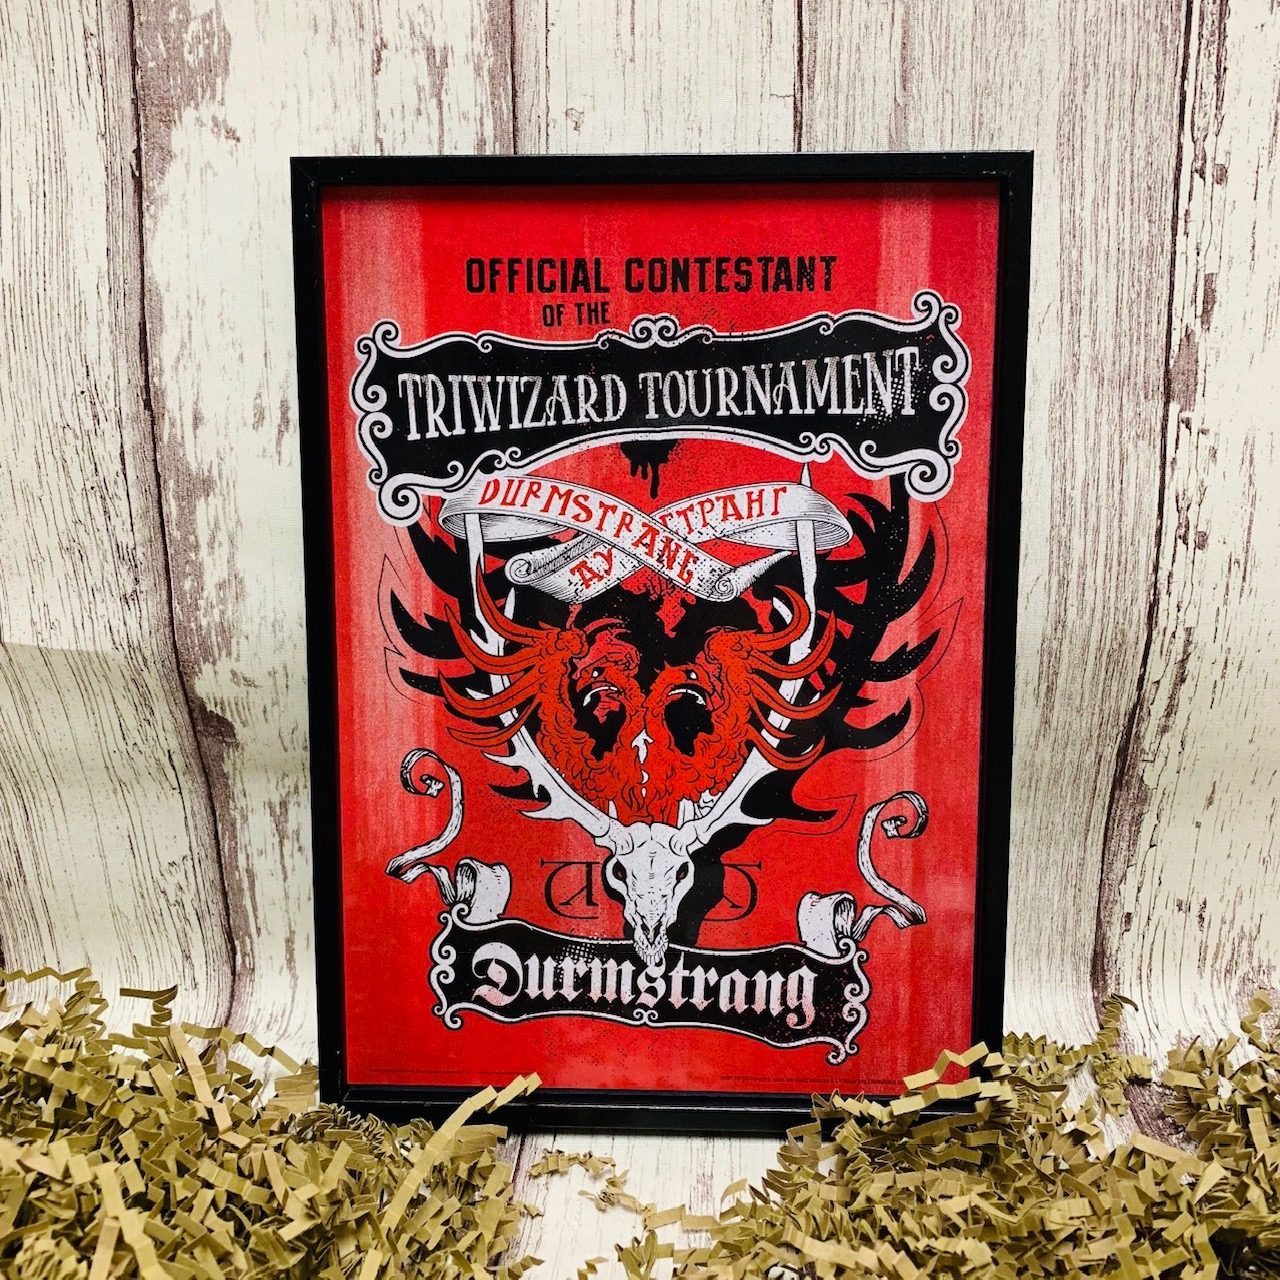 Triwizard Tournament Durmstrang A4 Framed Print Geek Gear Street party durmstrang theme durmstrang and beauxbatons 2014 proud sons of durmstrang. triwizard tournament durmstrang a4 framed print